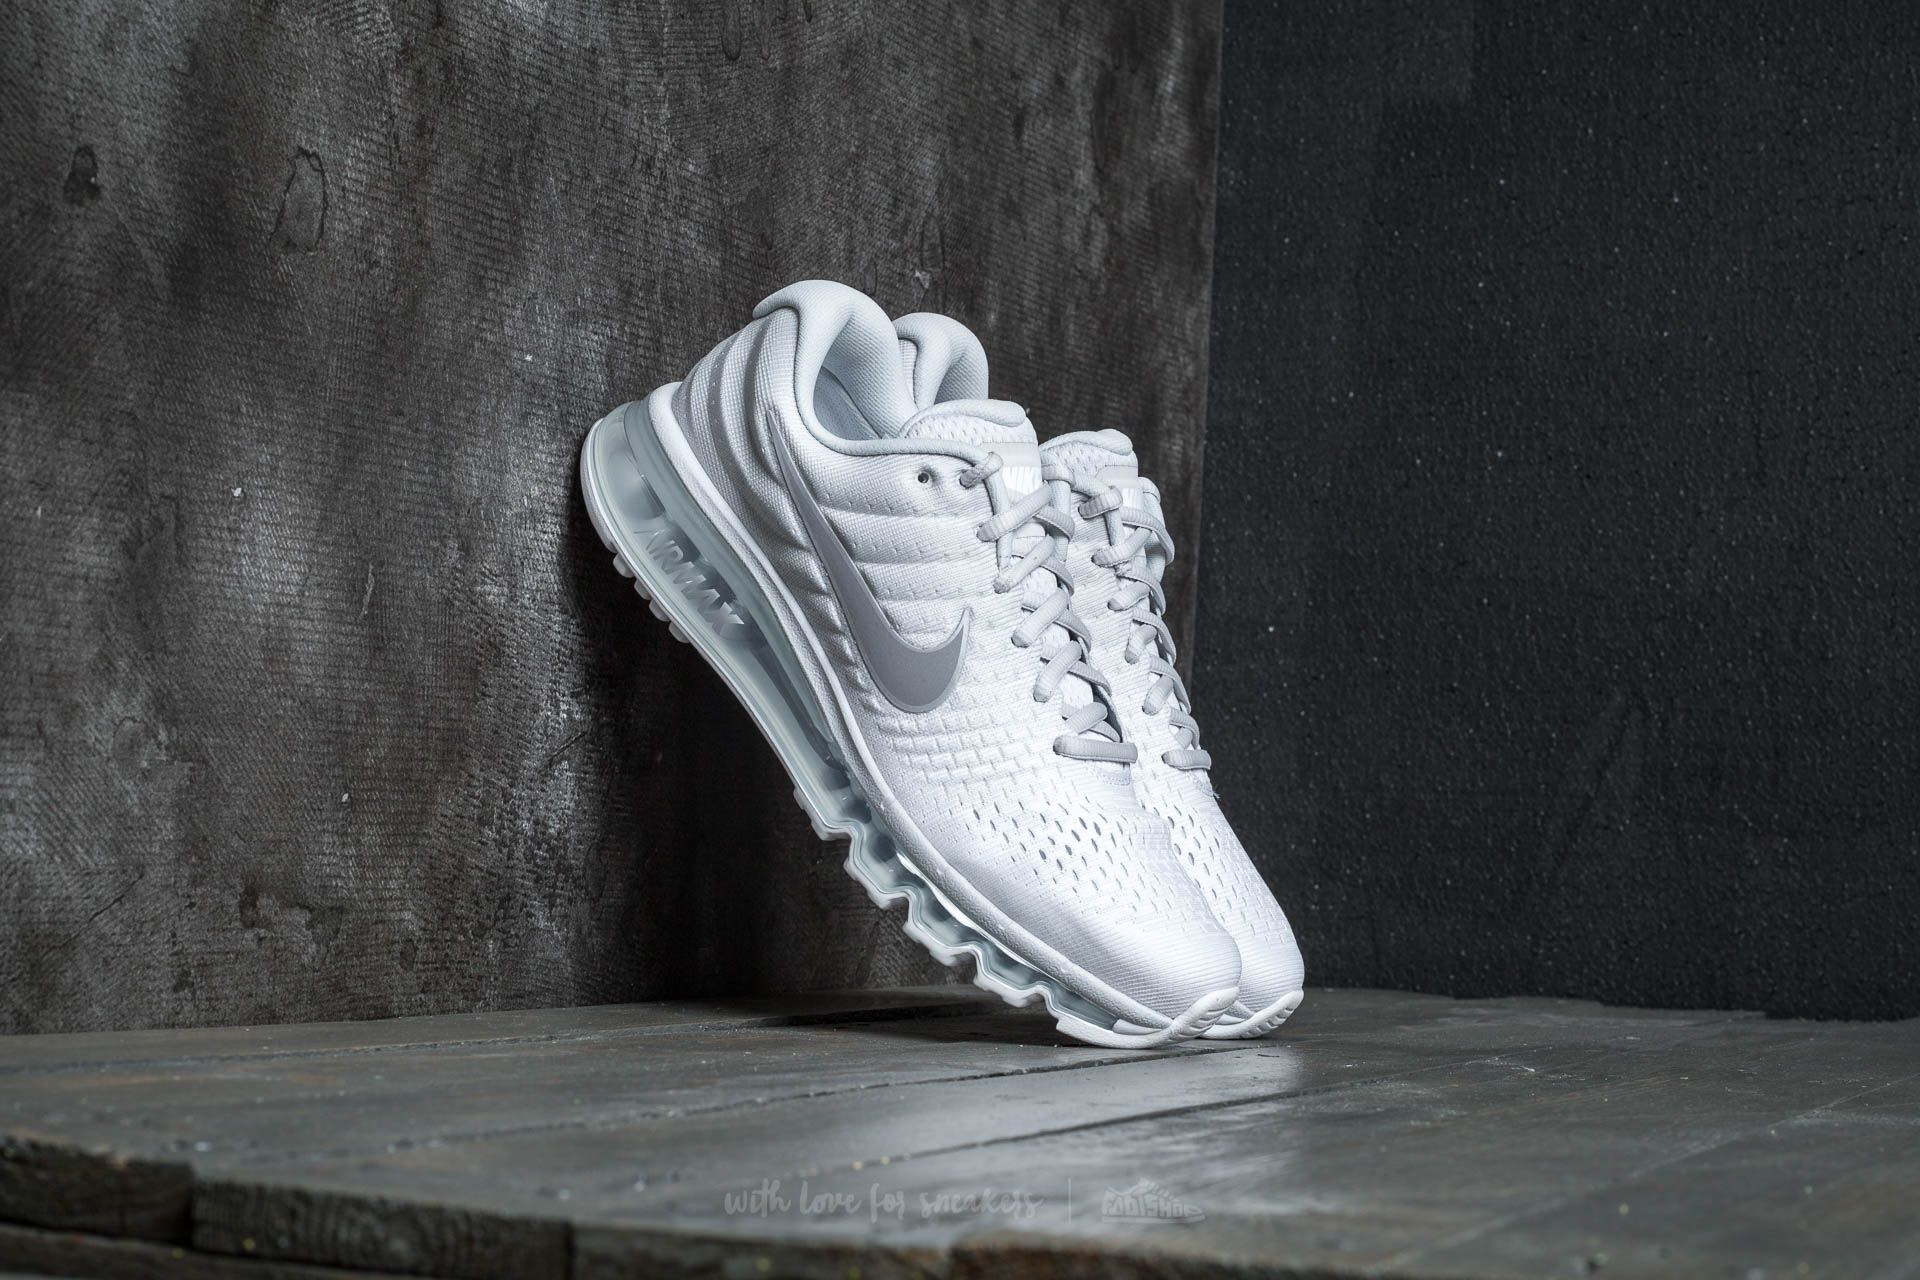 df033e15043a Nike Air Max 2017 Pure Platinum  Wolf Grey-White